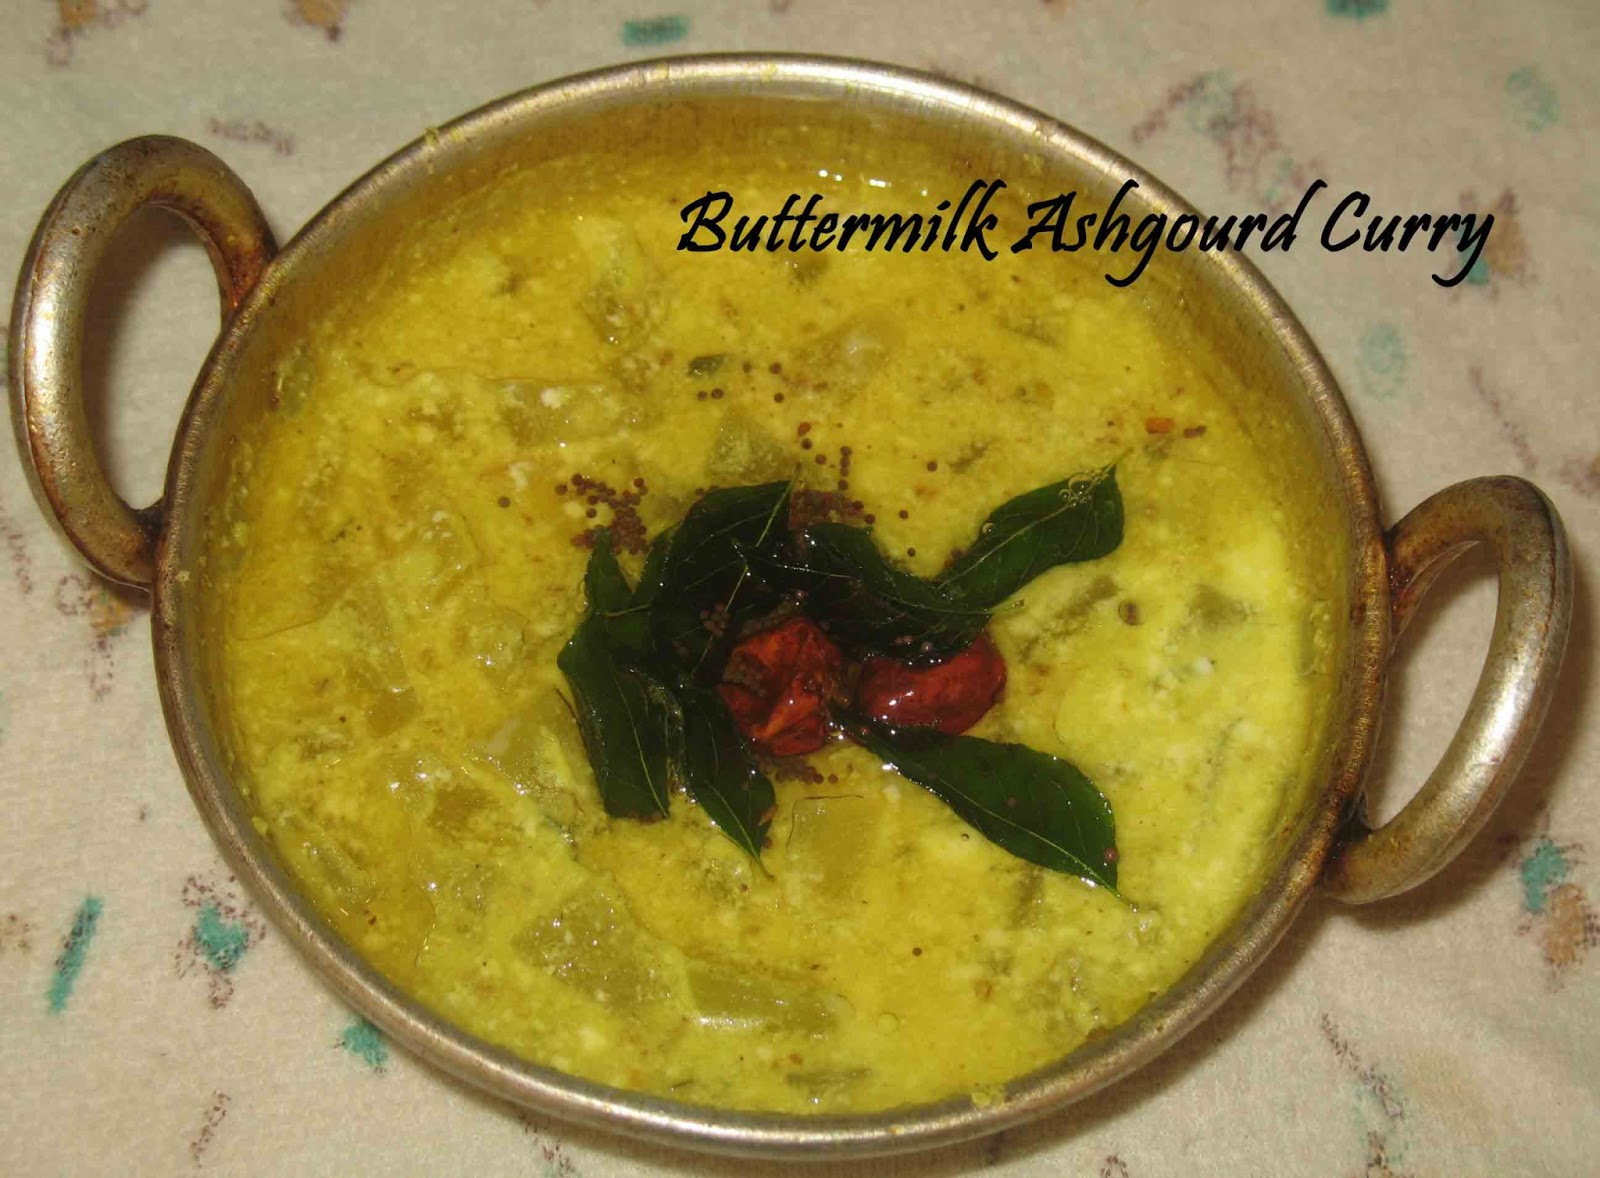 Buttermilk Ash Gourd Curry